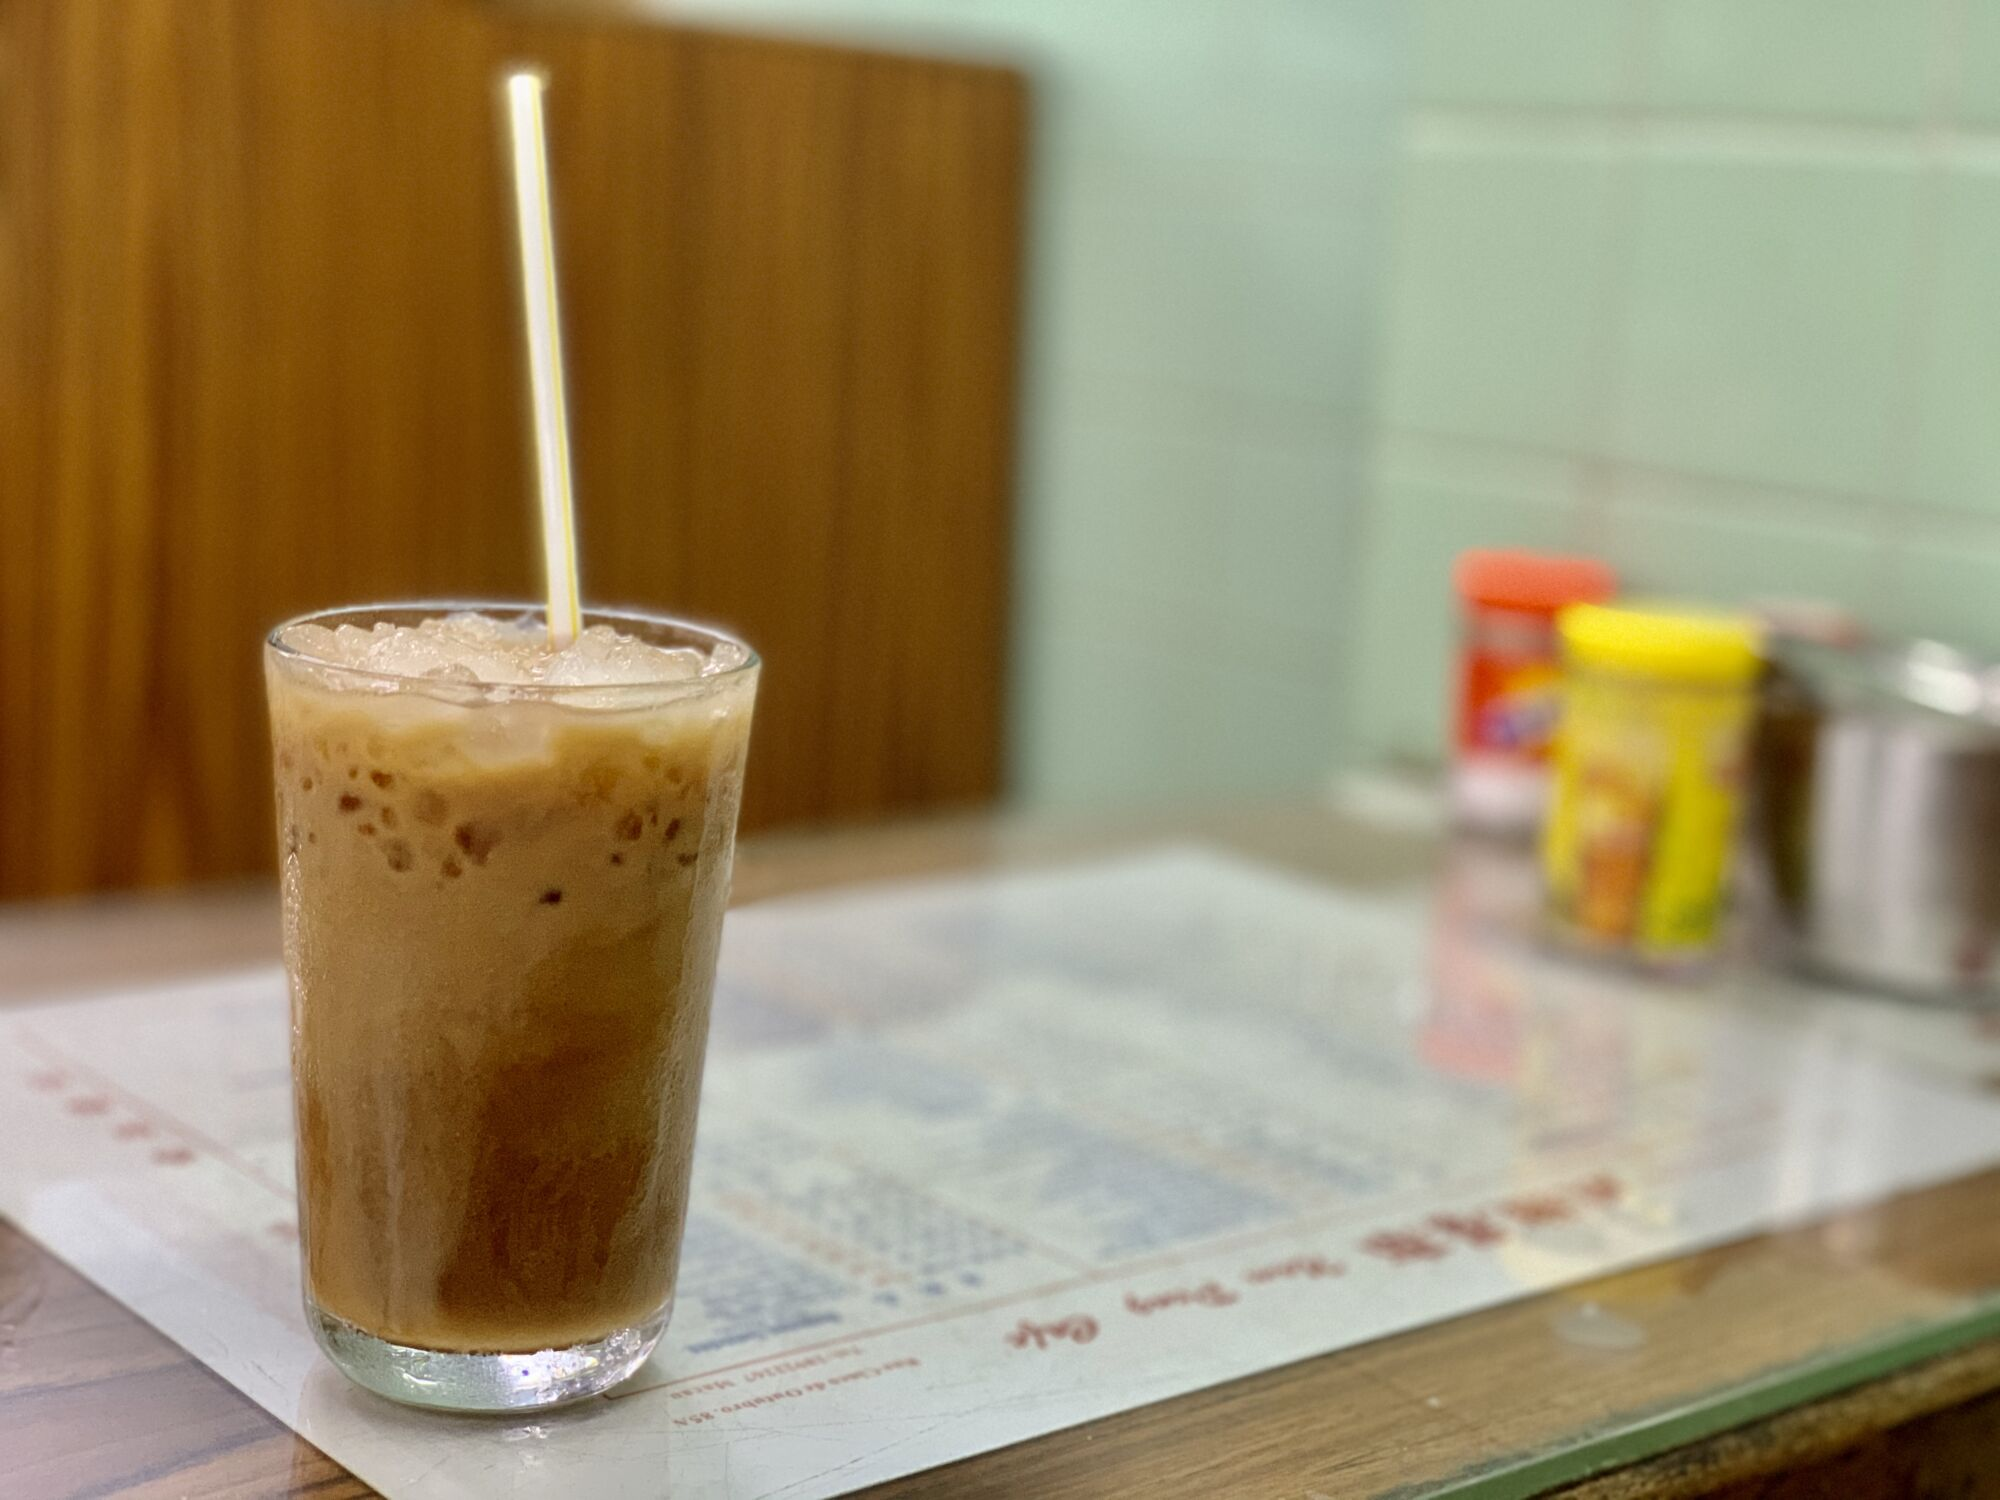 Milk Tea from Nam Ping on the Table Macau Lifestyle